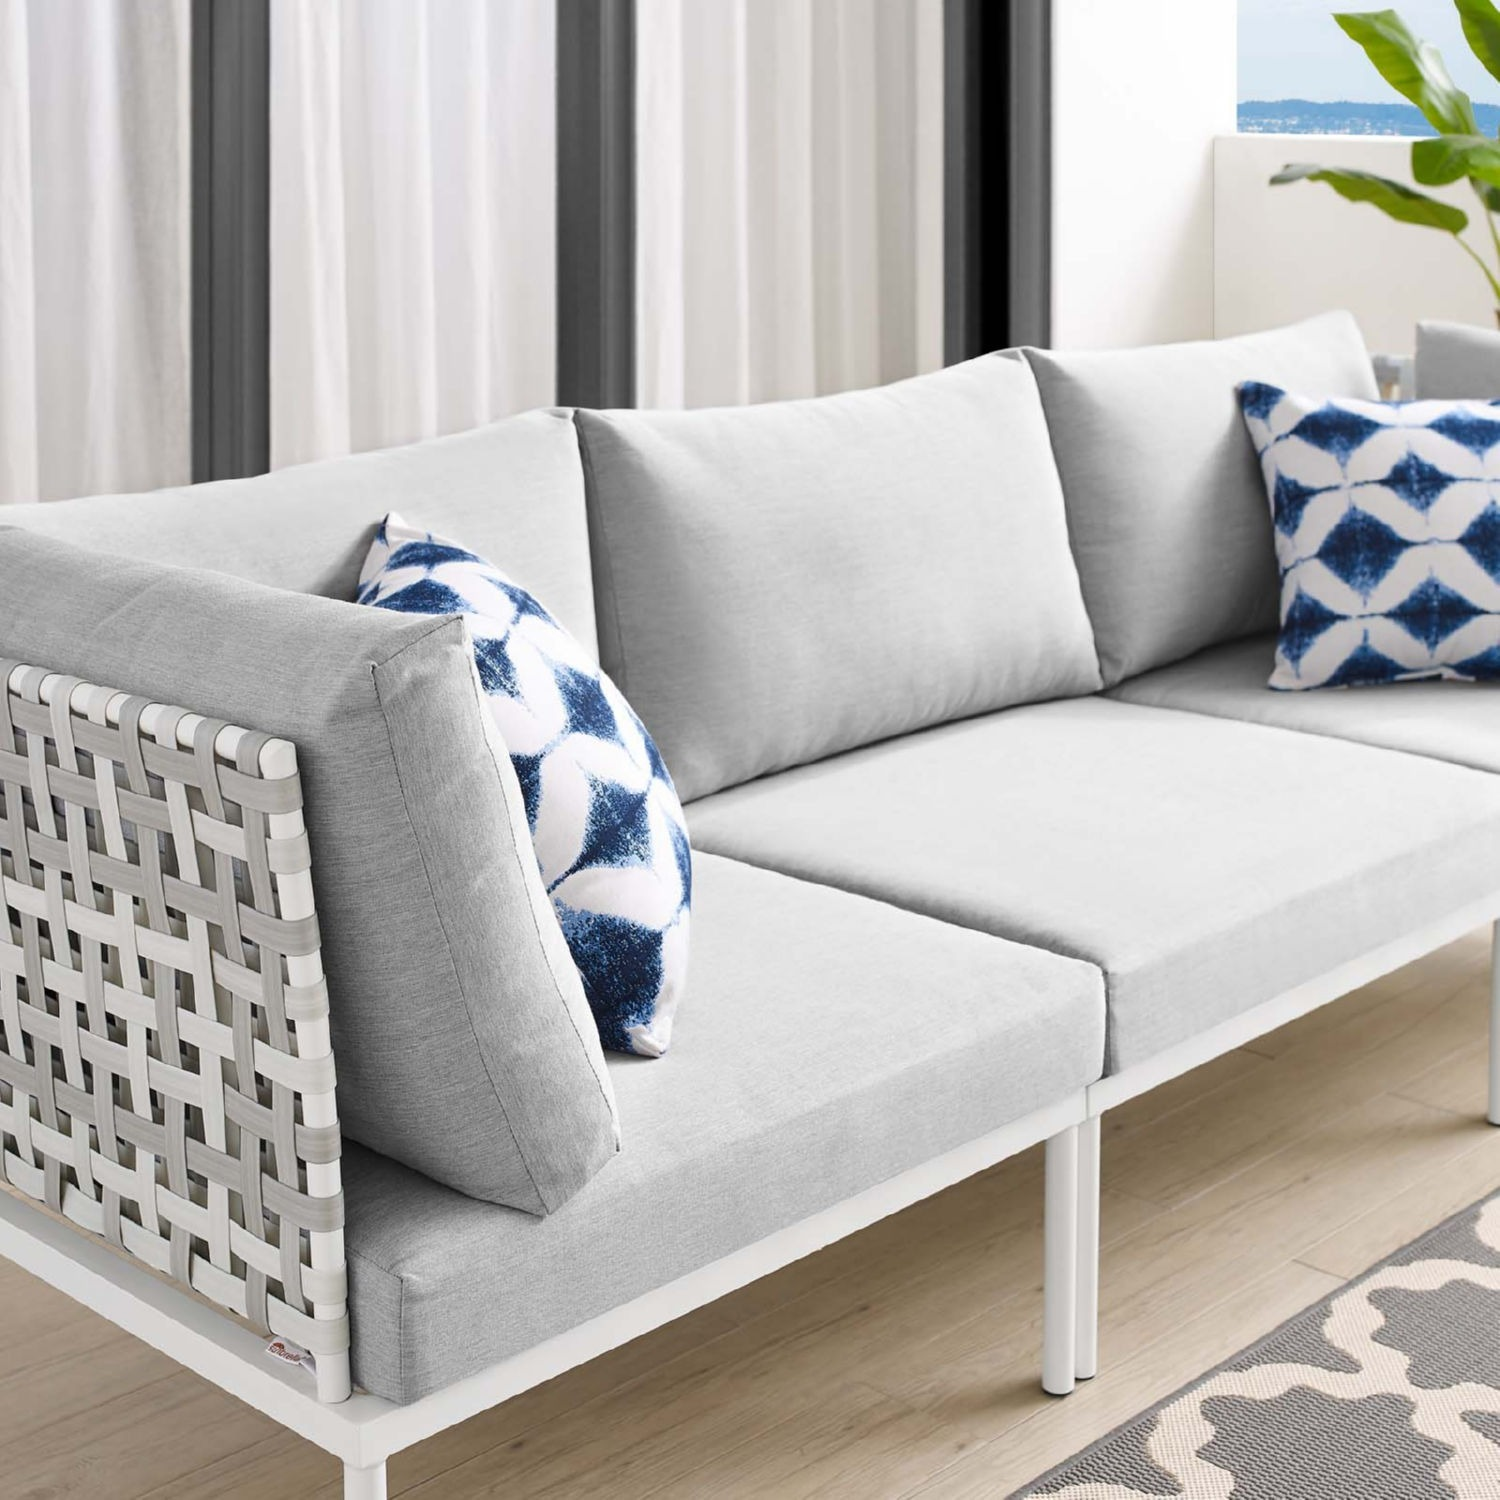 Outdoor Patio Sofa In Taupe Gray Cushion Fabric - image-6